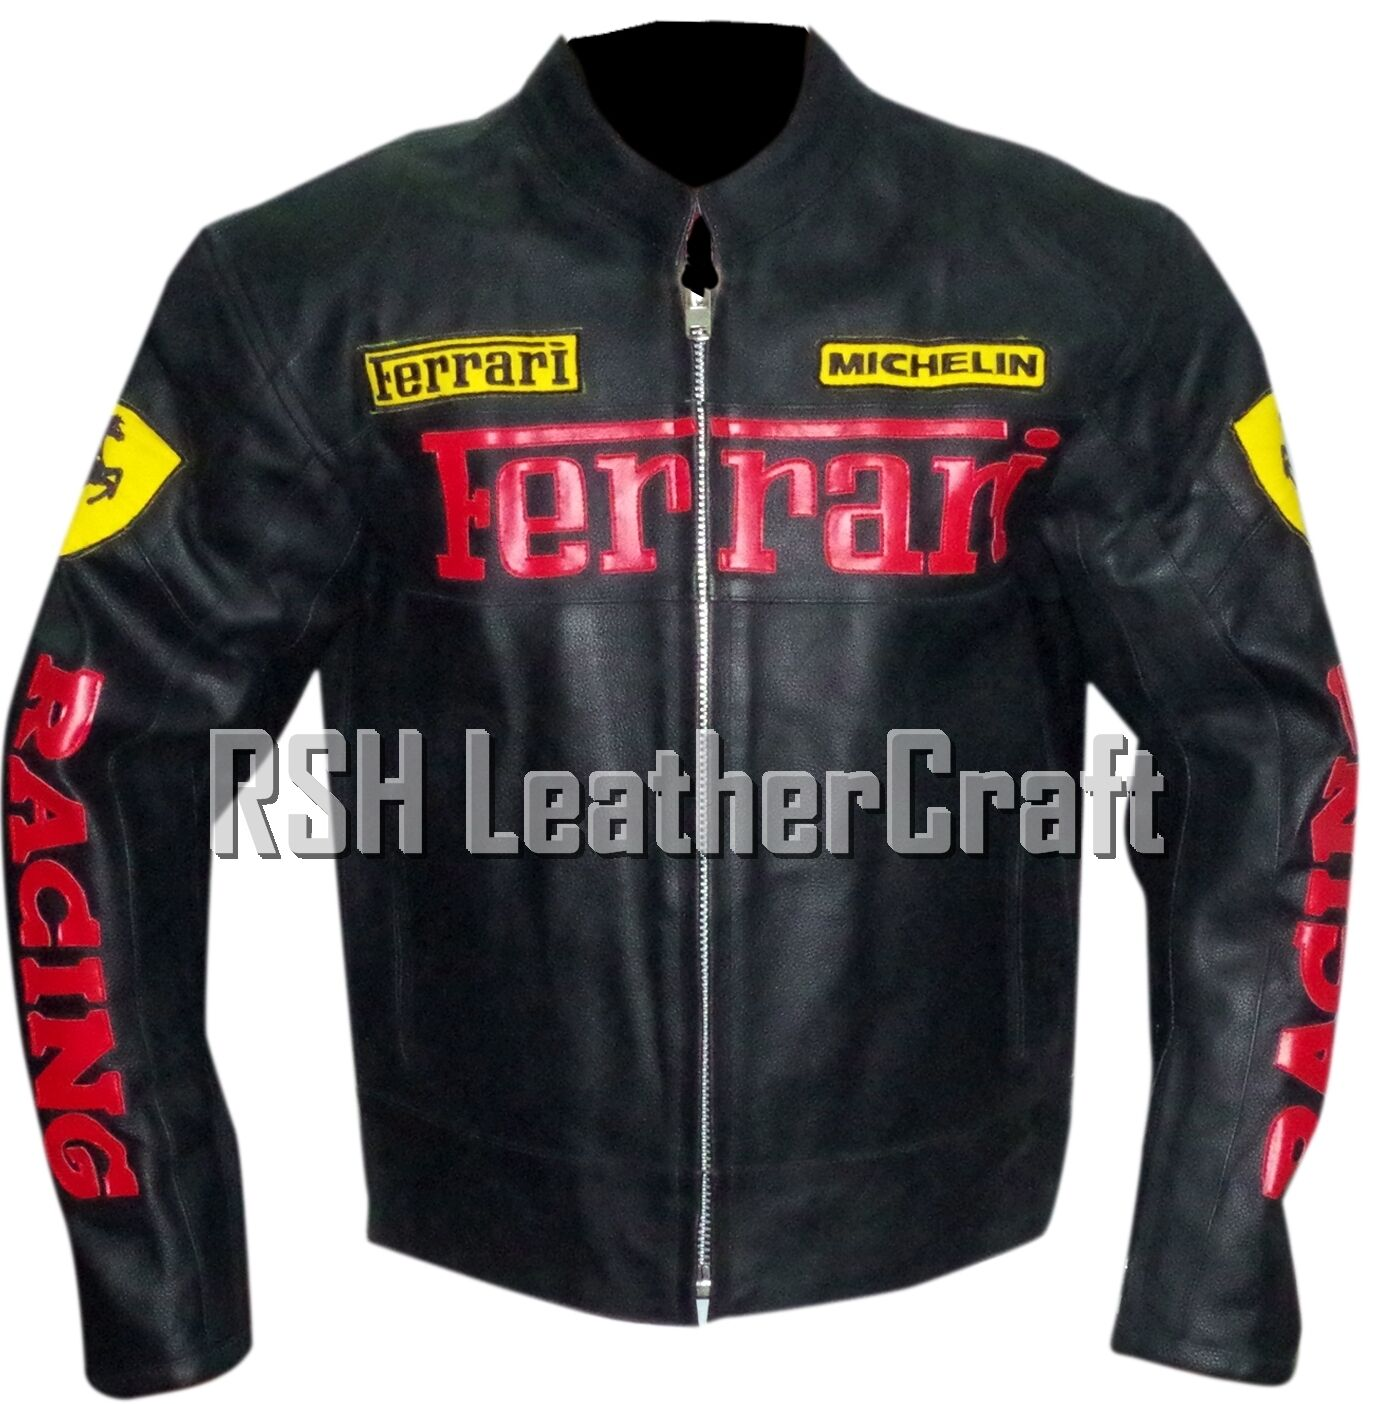 Ferrari Biker Motorcycle Racer Genuine Cowhide Leather Rider Jacket With Armour For Sale Online Ebay